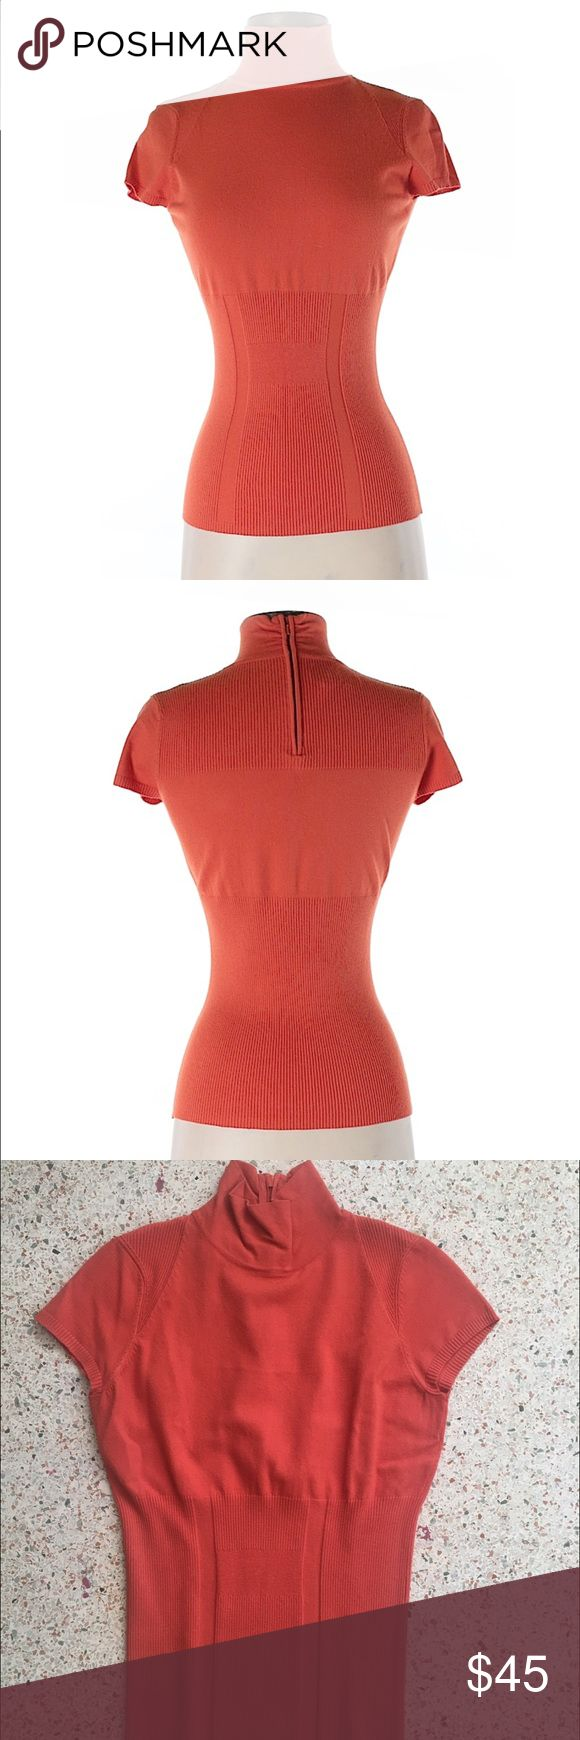 Great condition Etcetera Orange Women's Top In great condition with only minor wear (worn a couple times only).  All photos above are of the actual shirt, including mannequin pics.  Women's US Size Small.  Selling because the color orange apparently doesn't suit my skin tone very well, but it's really comfortable and cute for business or pleasure. Etcetera Tops